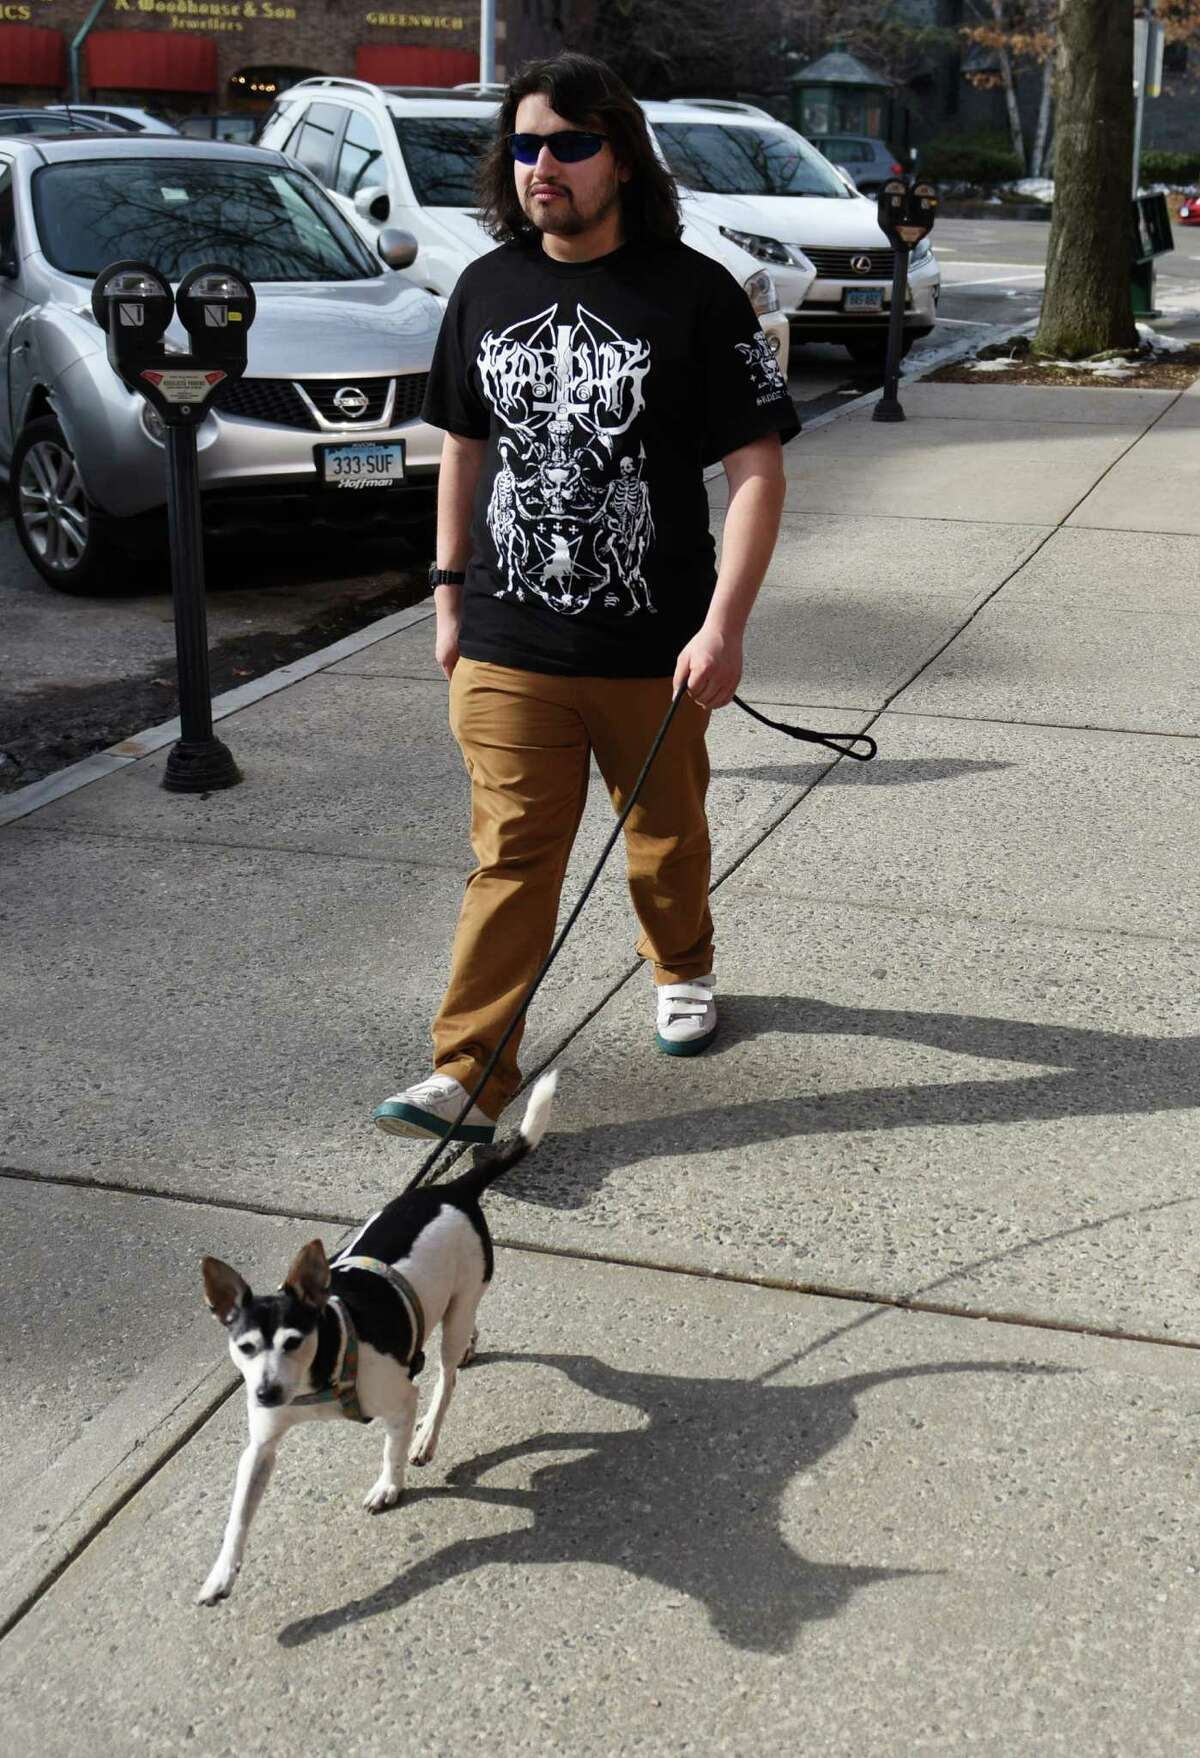 Bertie Connally, of Greenwich, wears a T-shirt while walking his rat terrier, Sonny, down Greenwich Avenue in downtown Greenwich, Conn. Wednesday, March 11, 2015. Wednesday's weather was a relative heat wave with temperatures rising into the mid-50s. Temperatures for the rest of the week andd into the weekend are expected to be in the mid-40s.